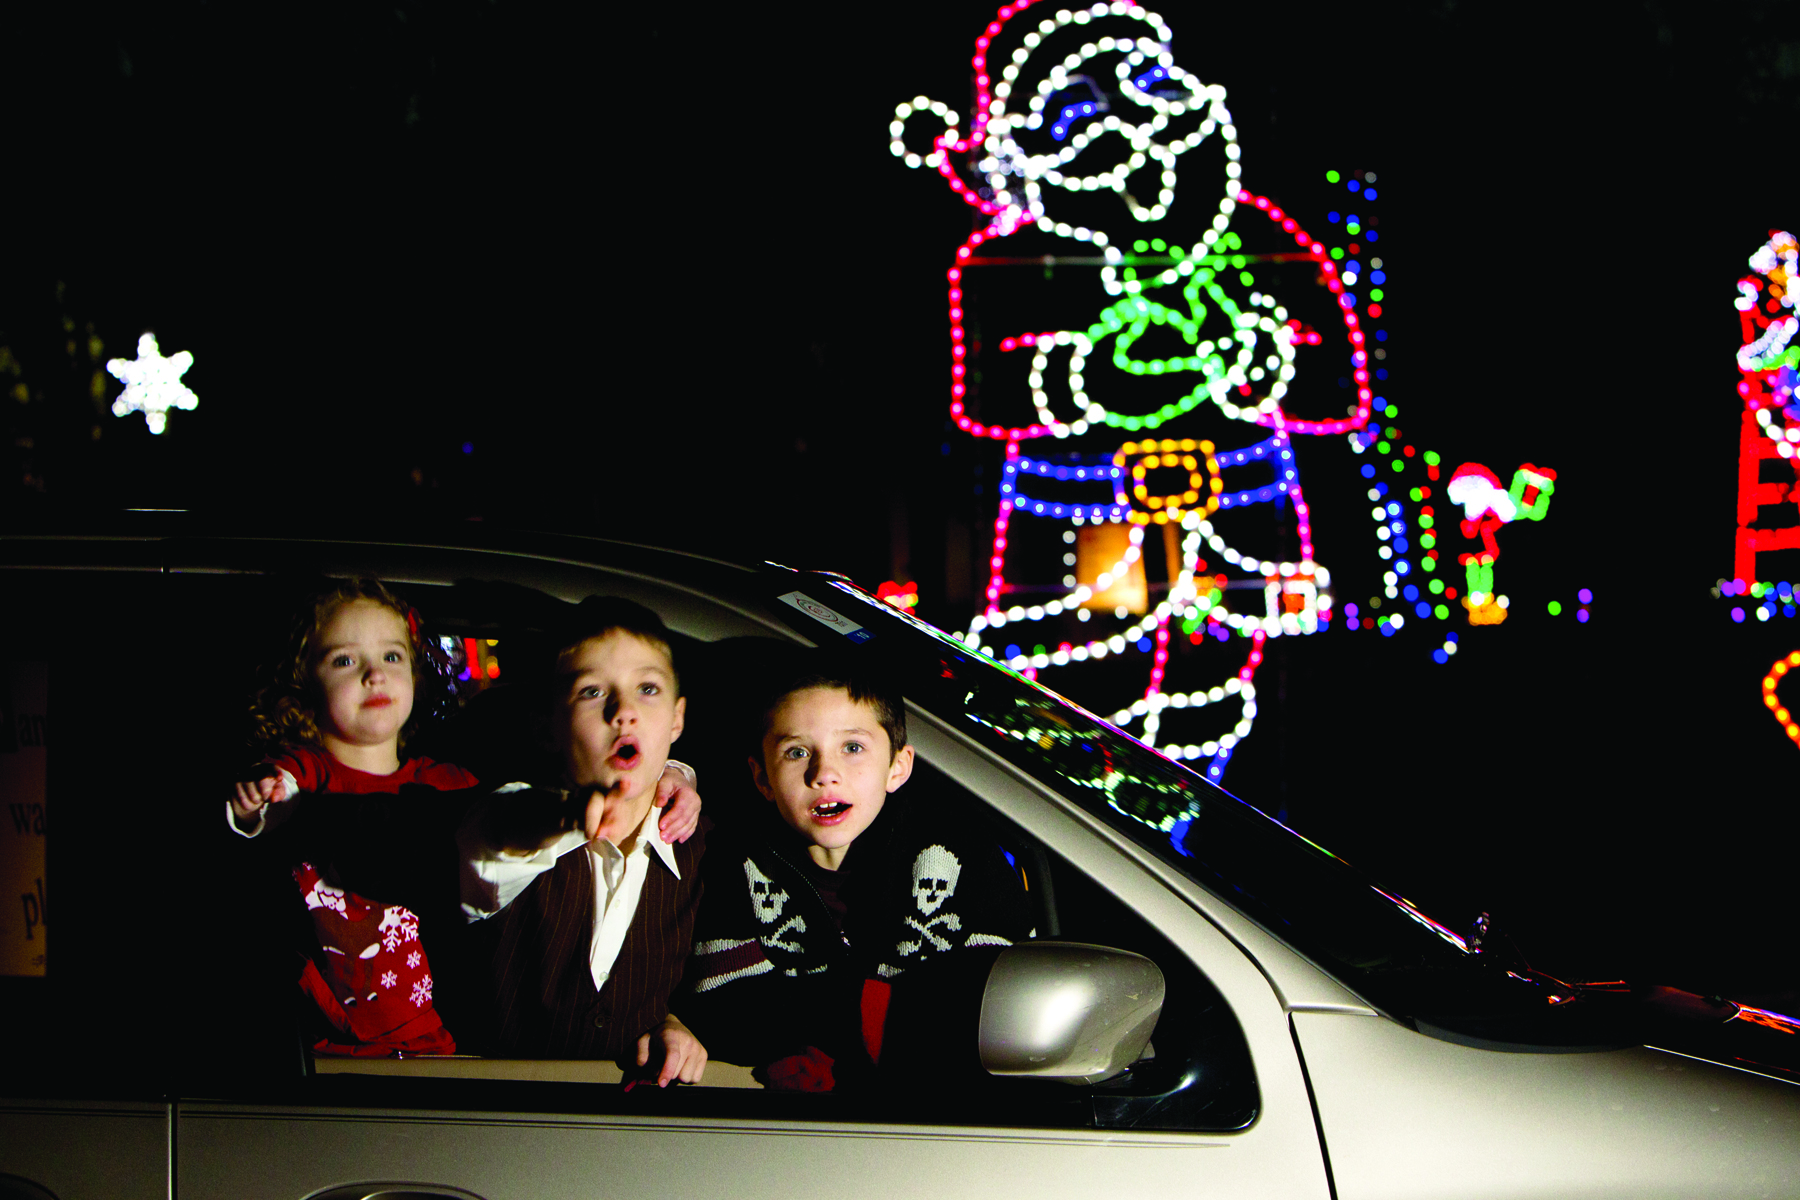 Visiting Santa Claus' Land Of Lights is a great way to spend holidays with kids.